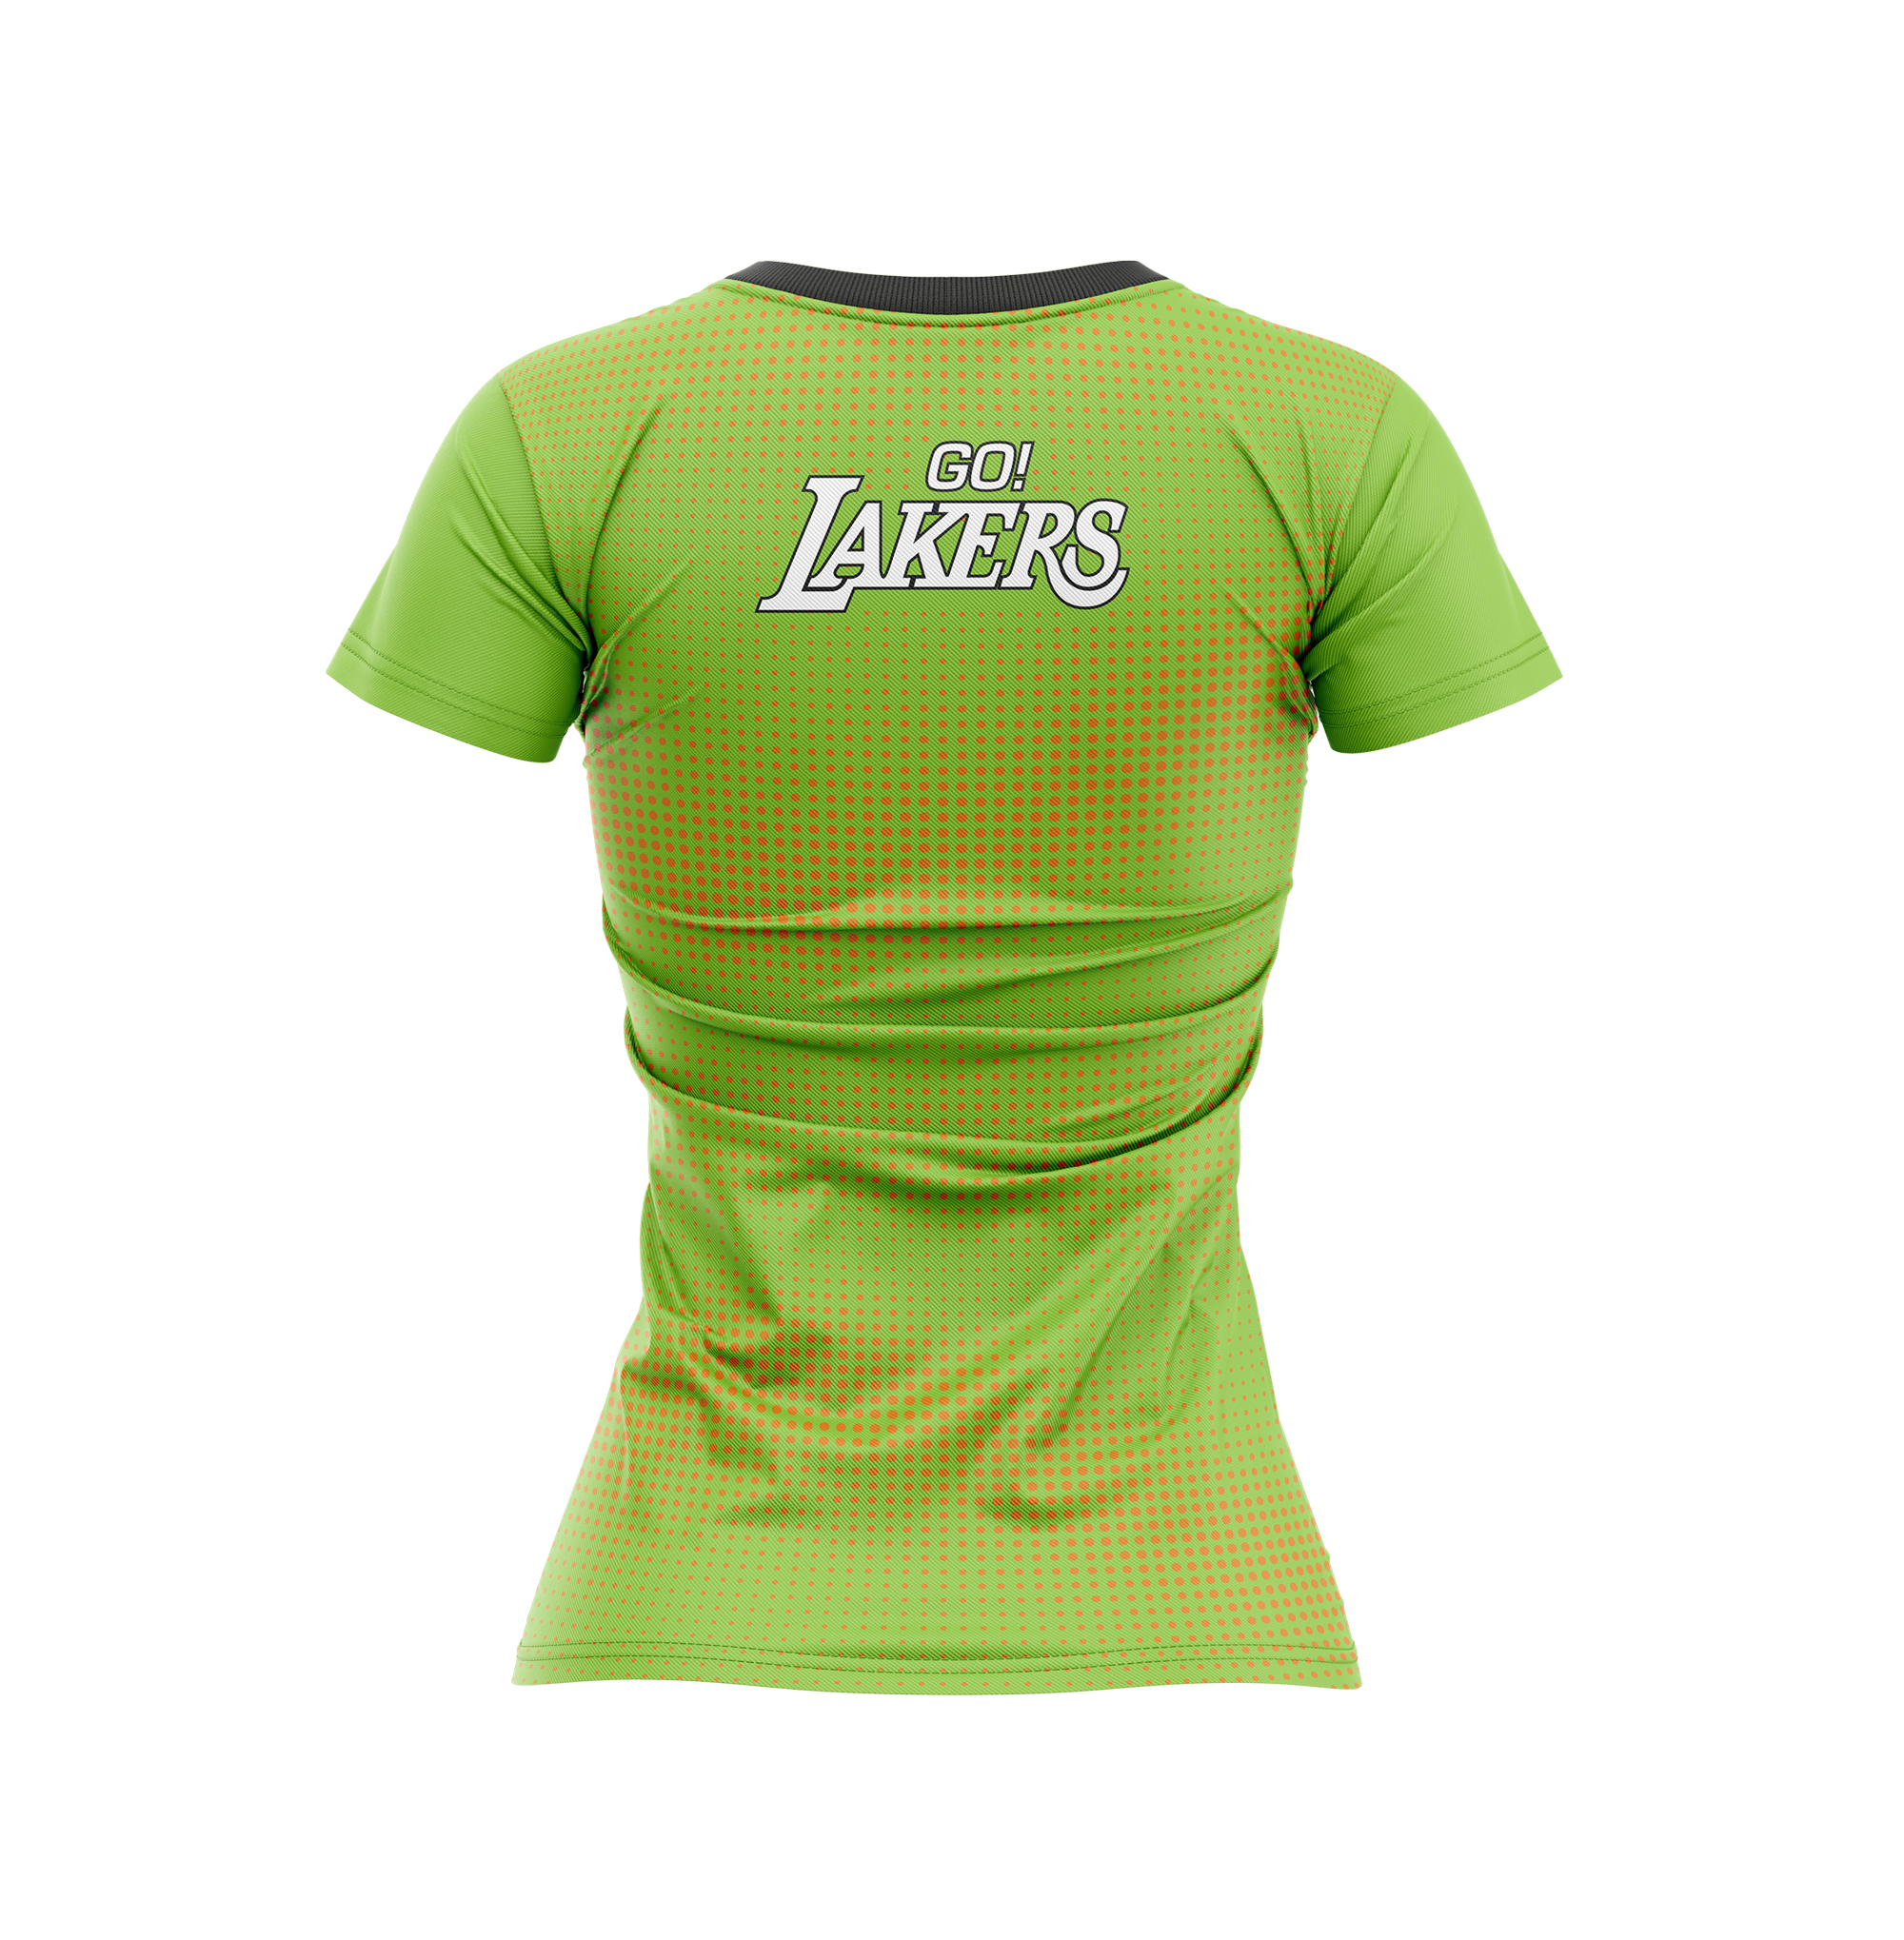 Lakers Women's Race Tee